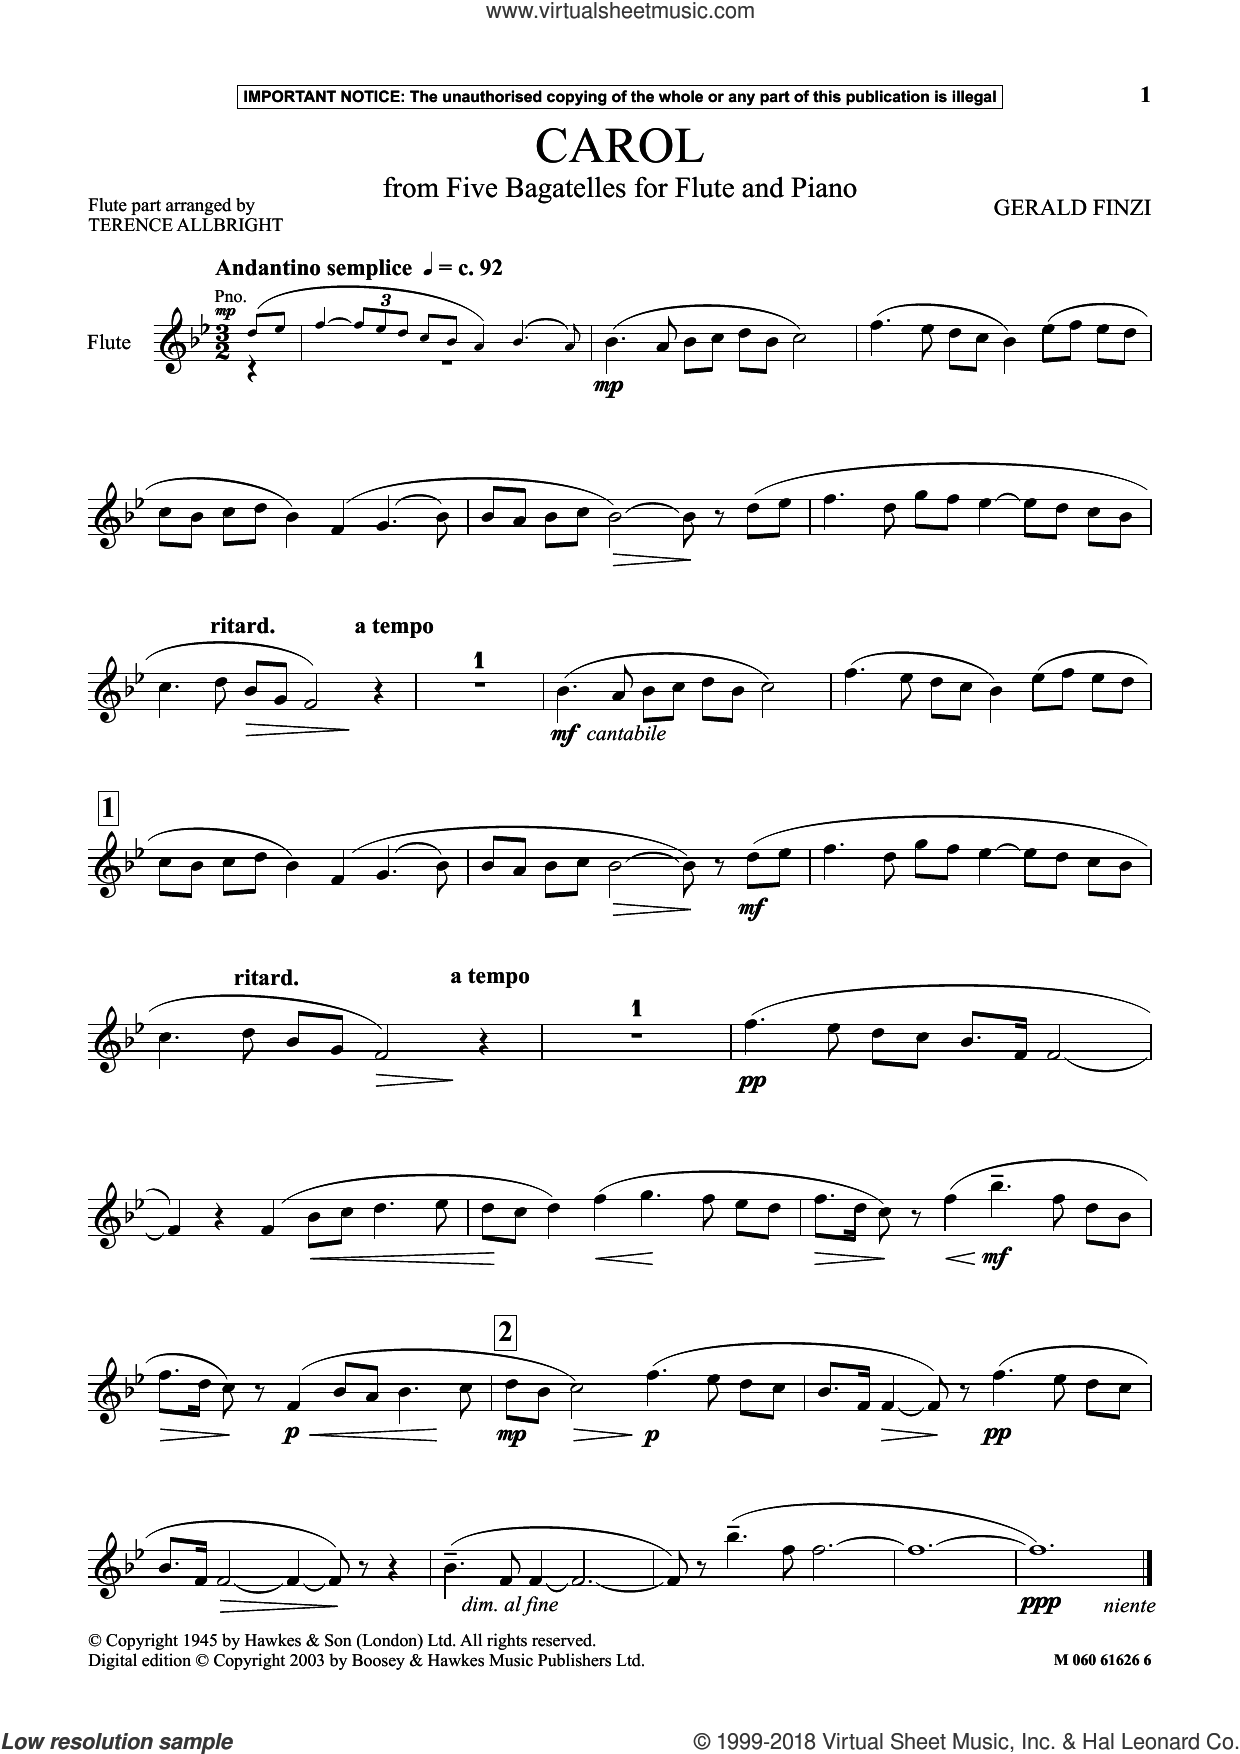 Carol (from Five Bagatelles For Flute And Piano) sheet music for flute solo by Gerald Finzi, classical score, intermediate skill level